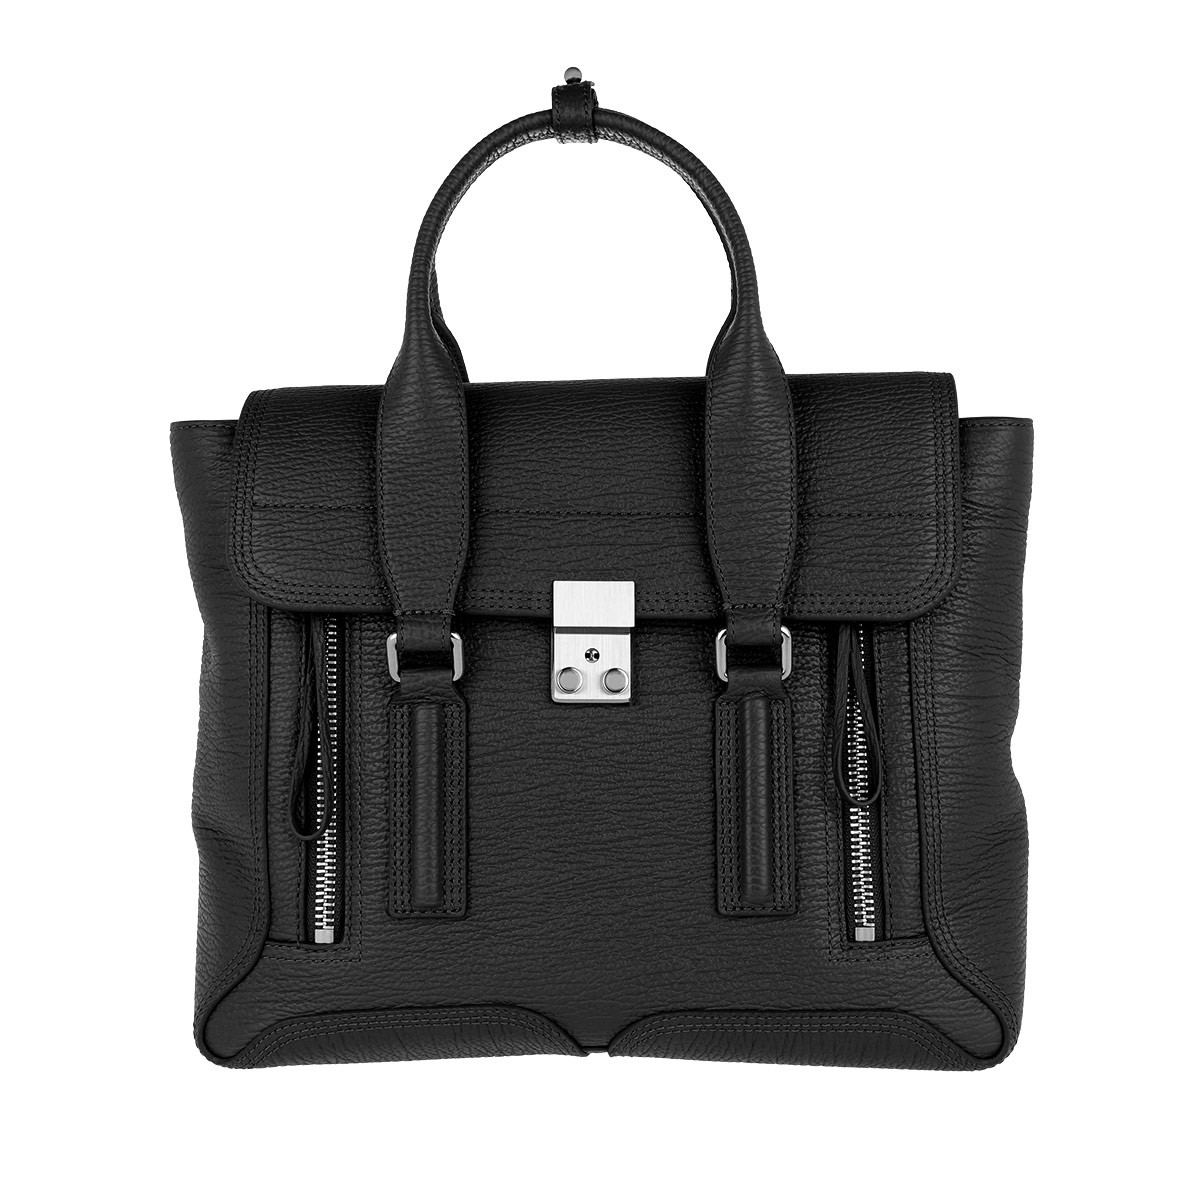 3.1 Phillip Lim Tote - Pashli Medium Satchel Black/Nickel - in schwarz - für Damen